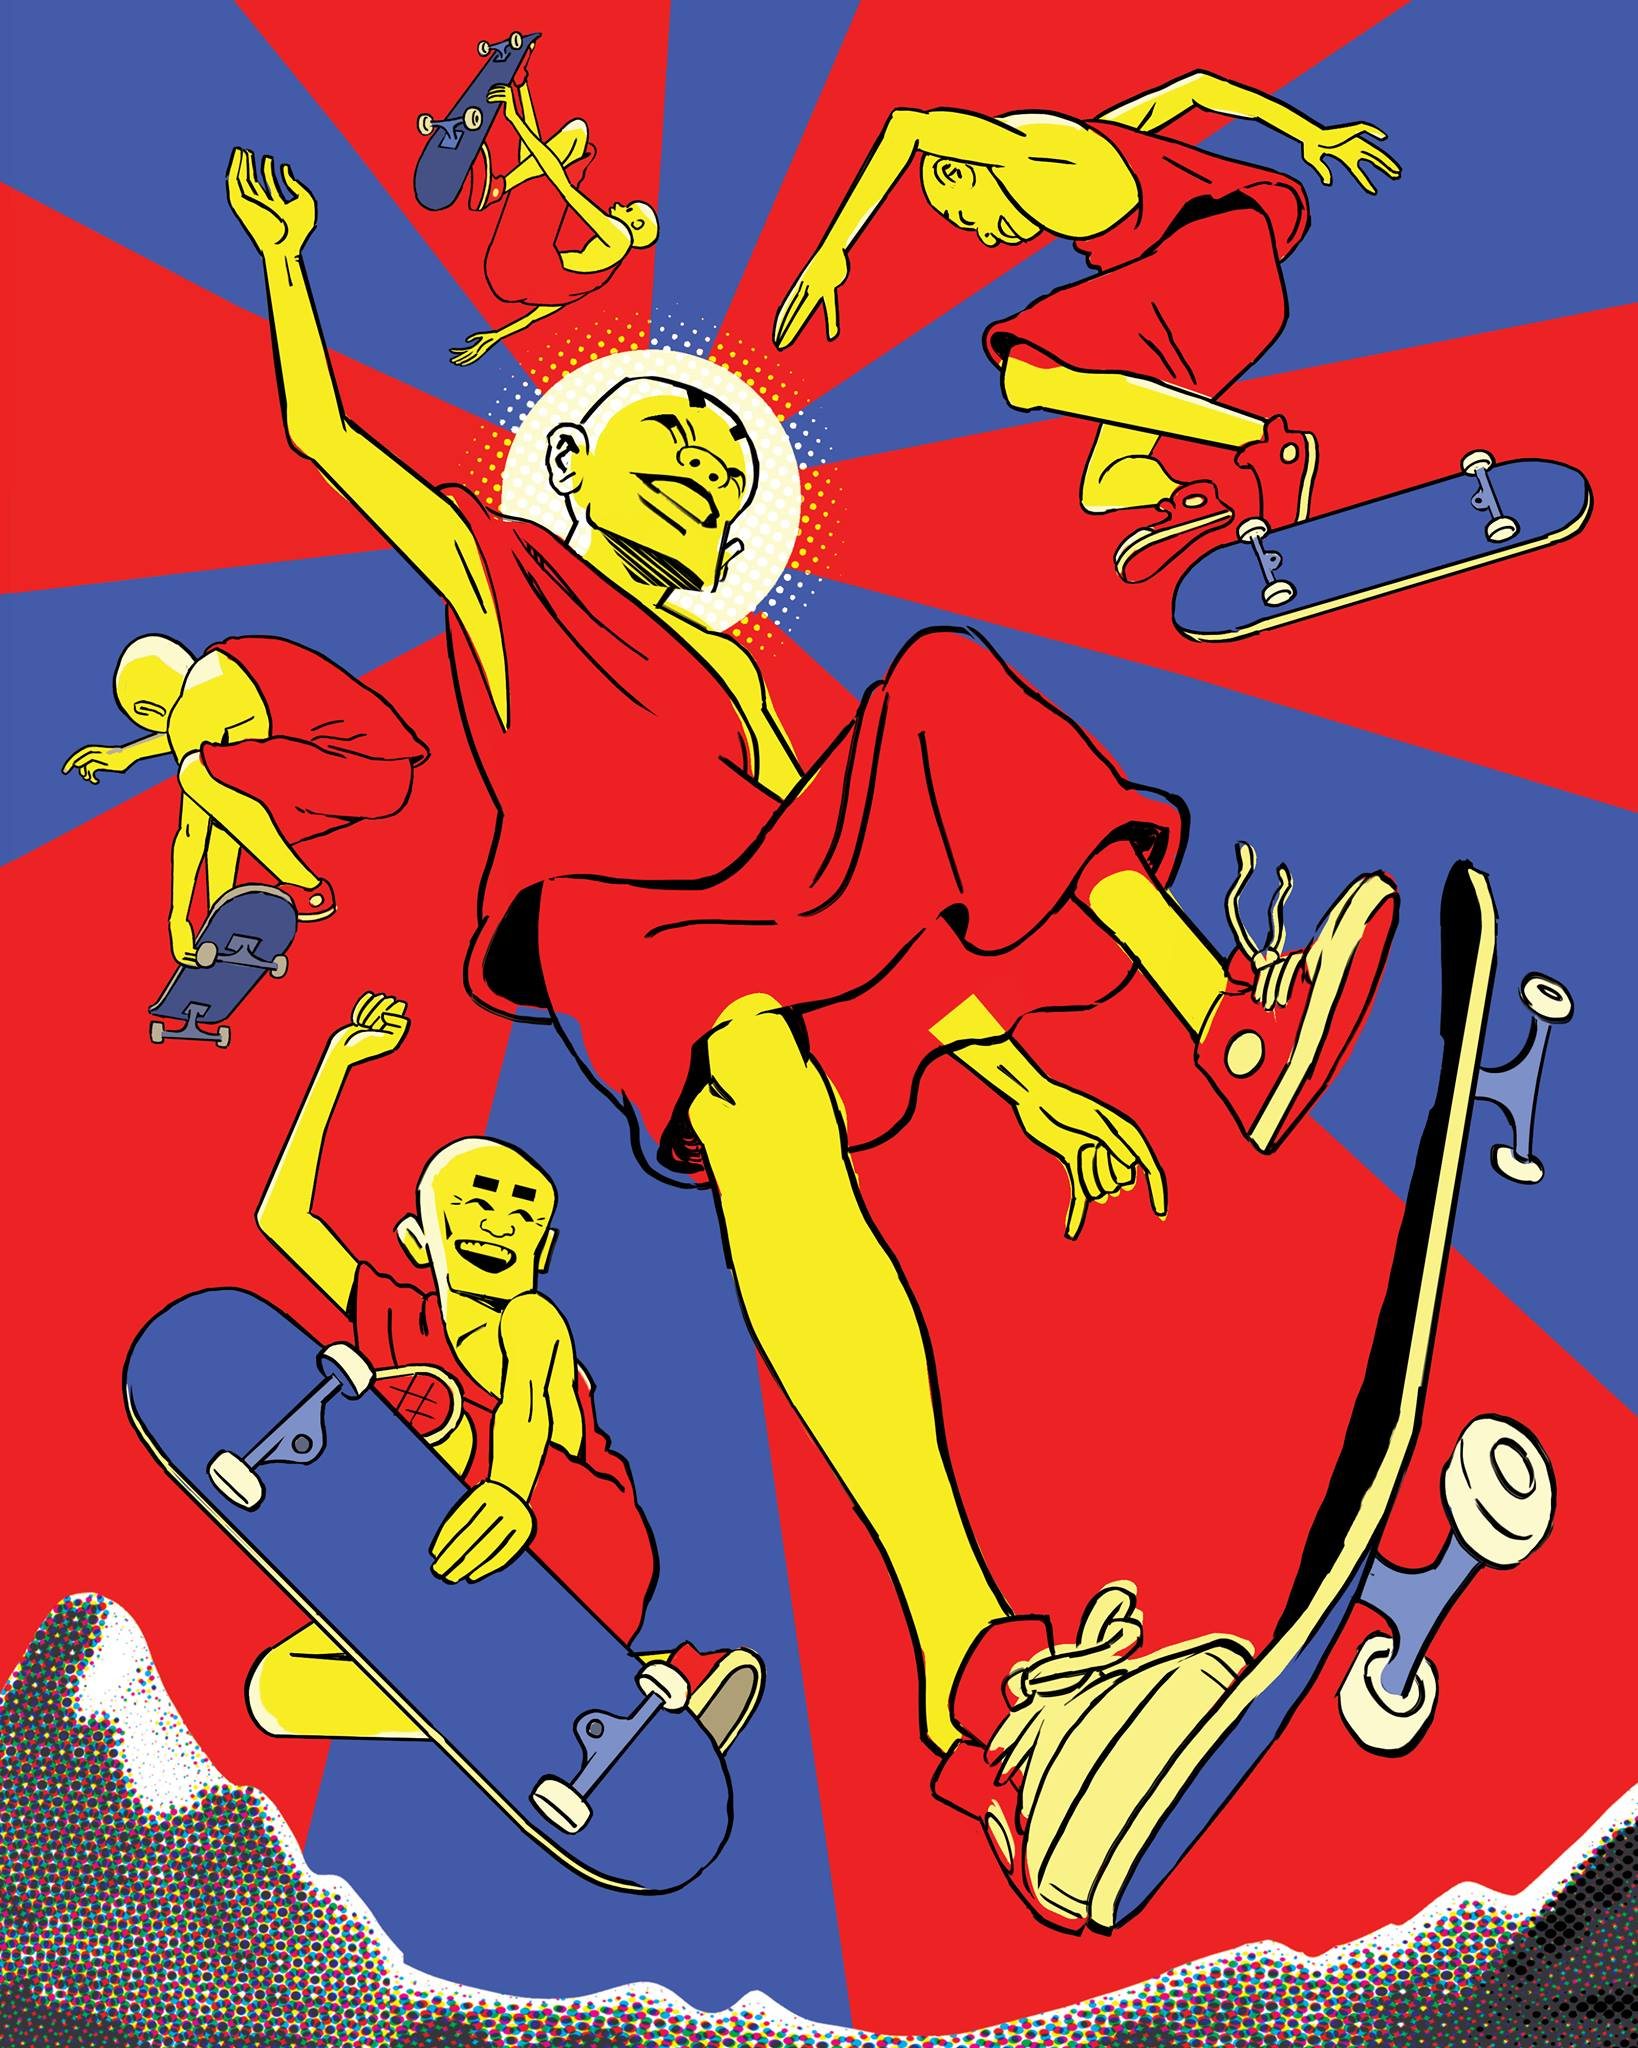 """Monks Skateboarding""By Maximus J Pauson"